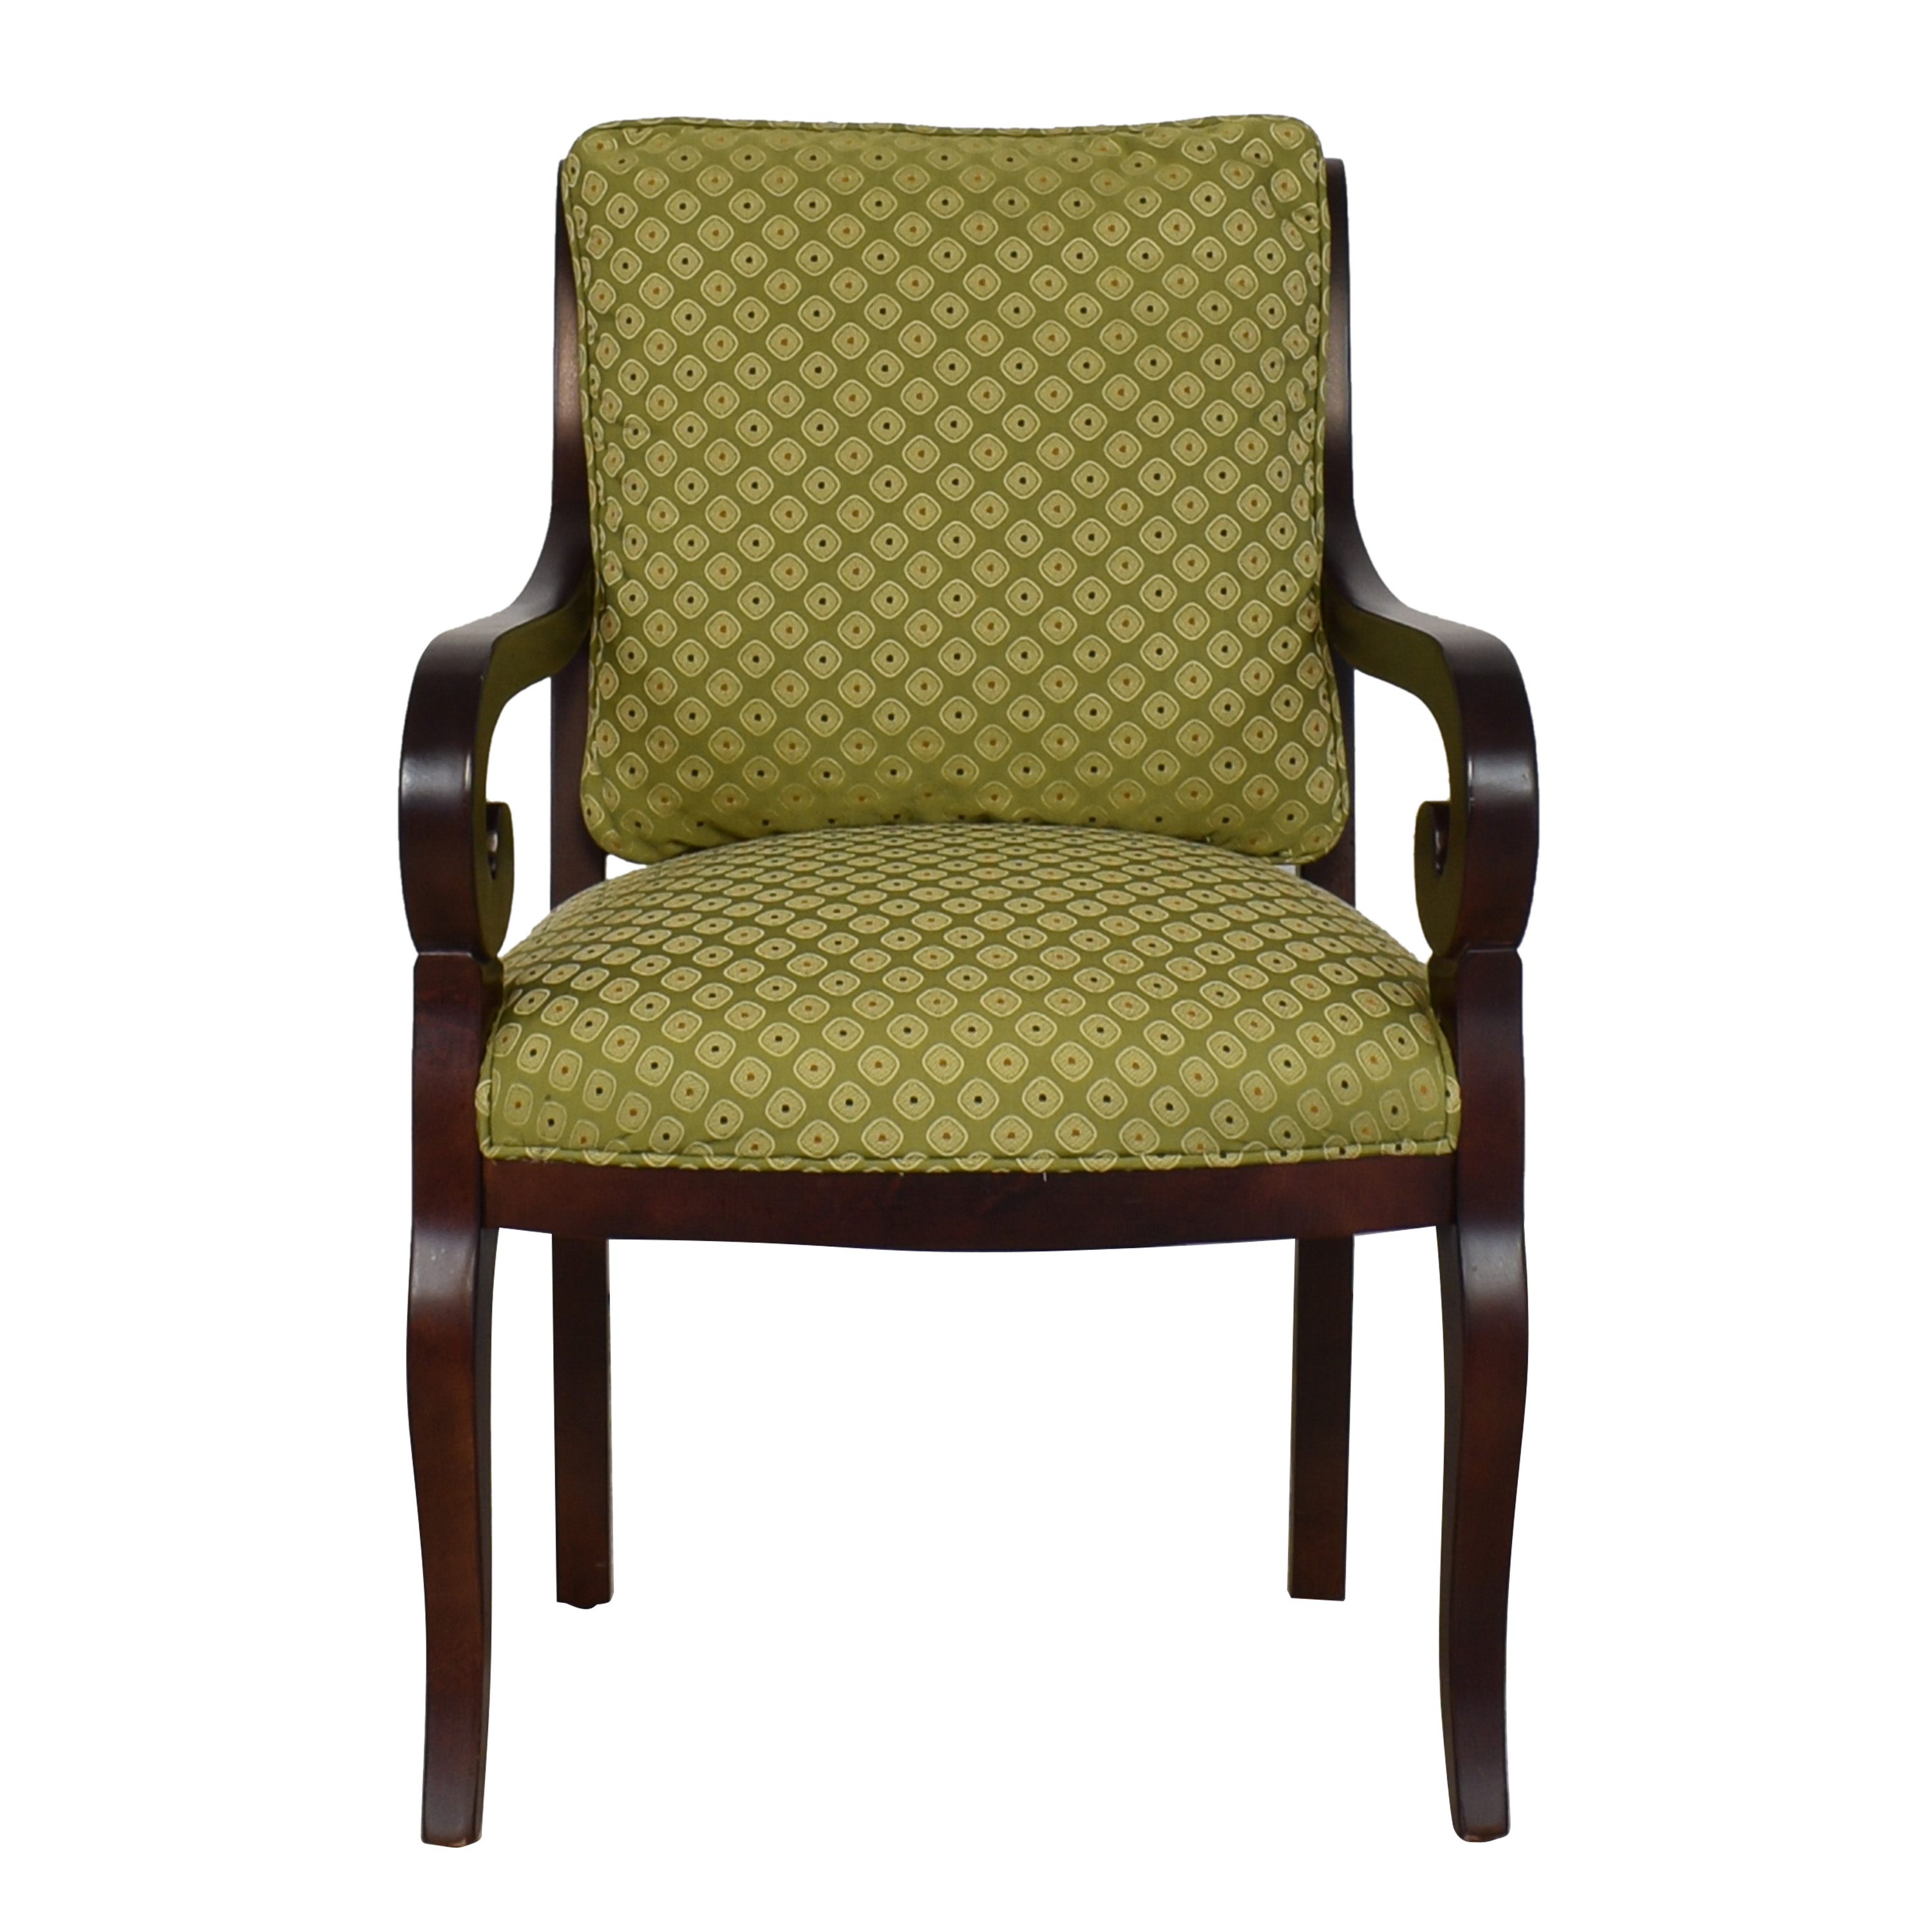 Fairfield Chair Company Fairfield Chair with Kravet Fabric dark brown and green